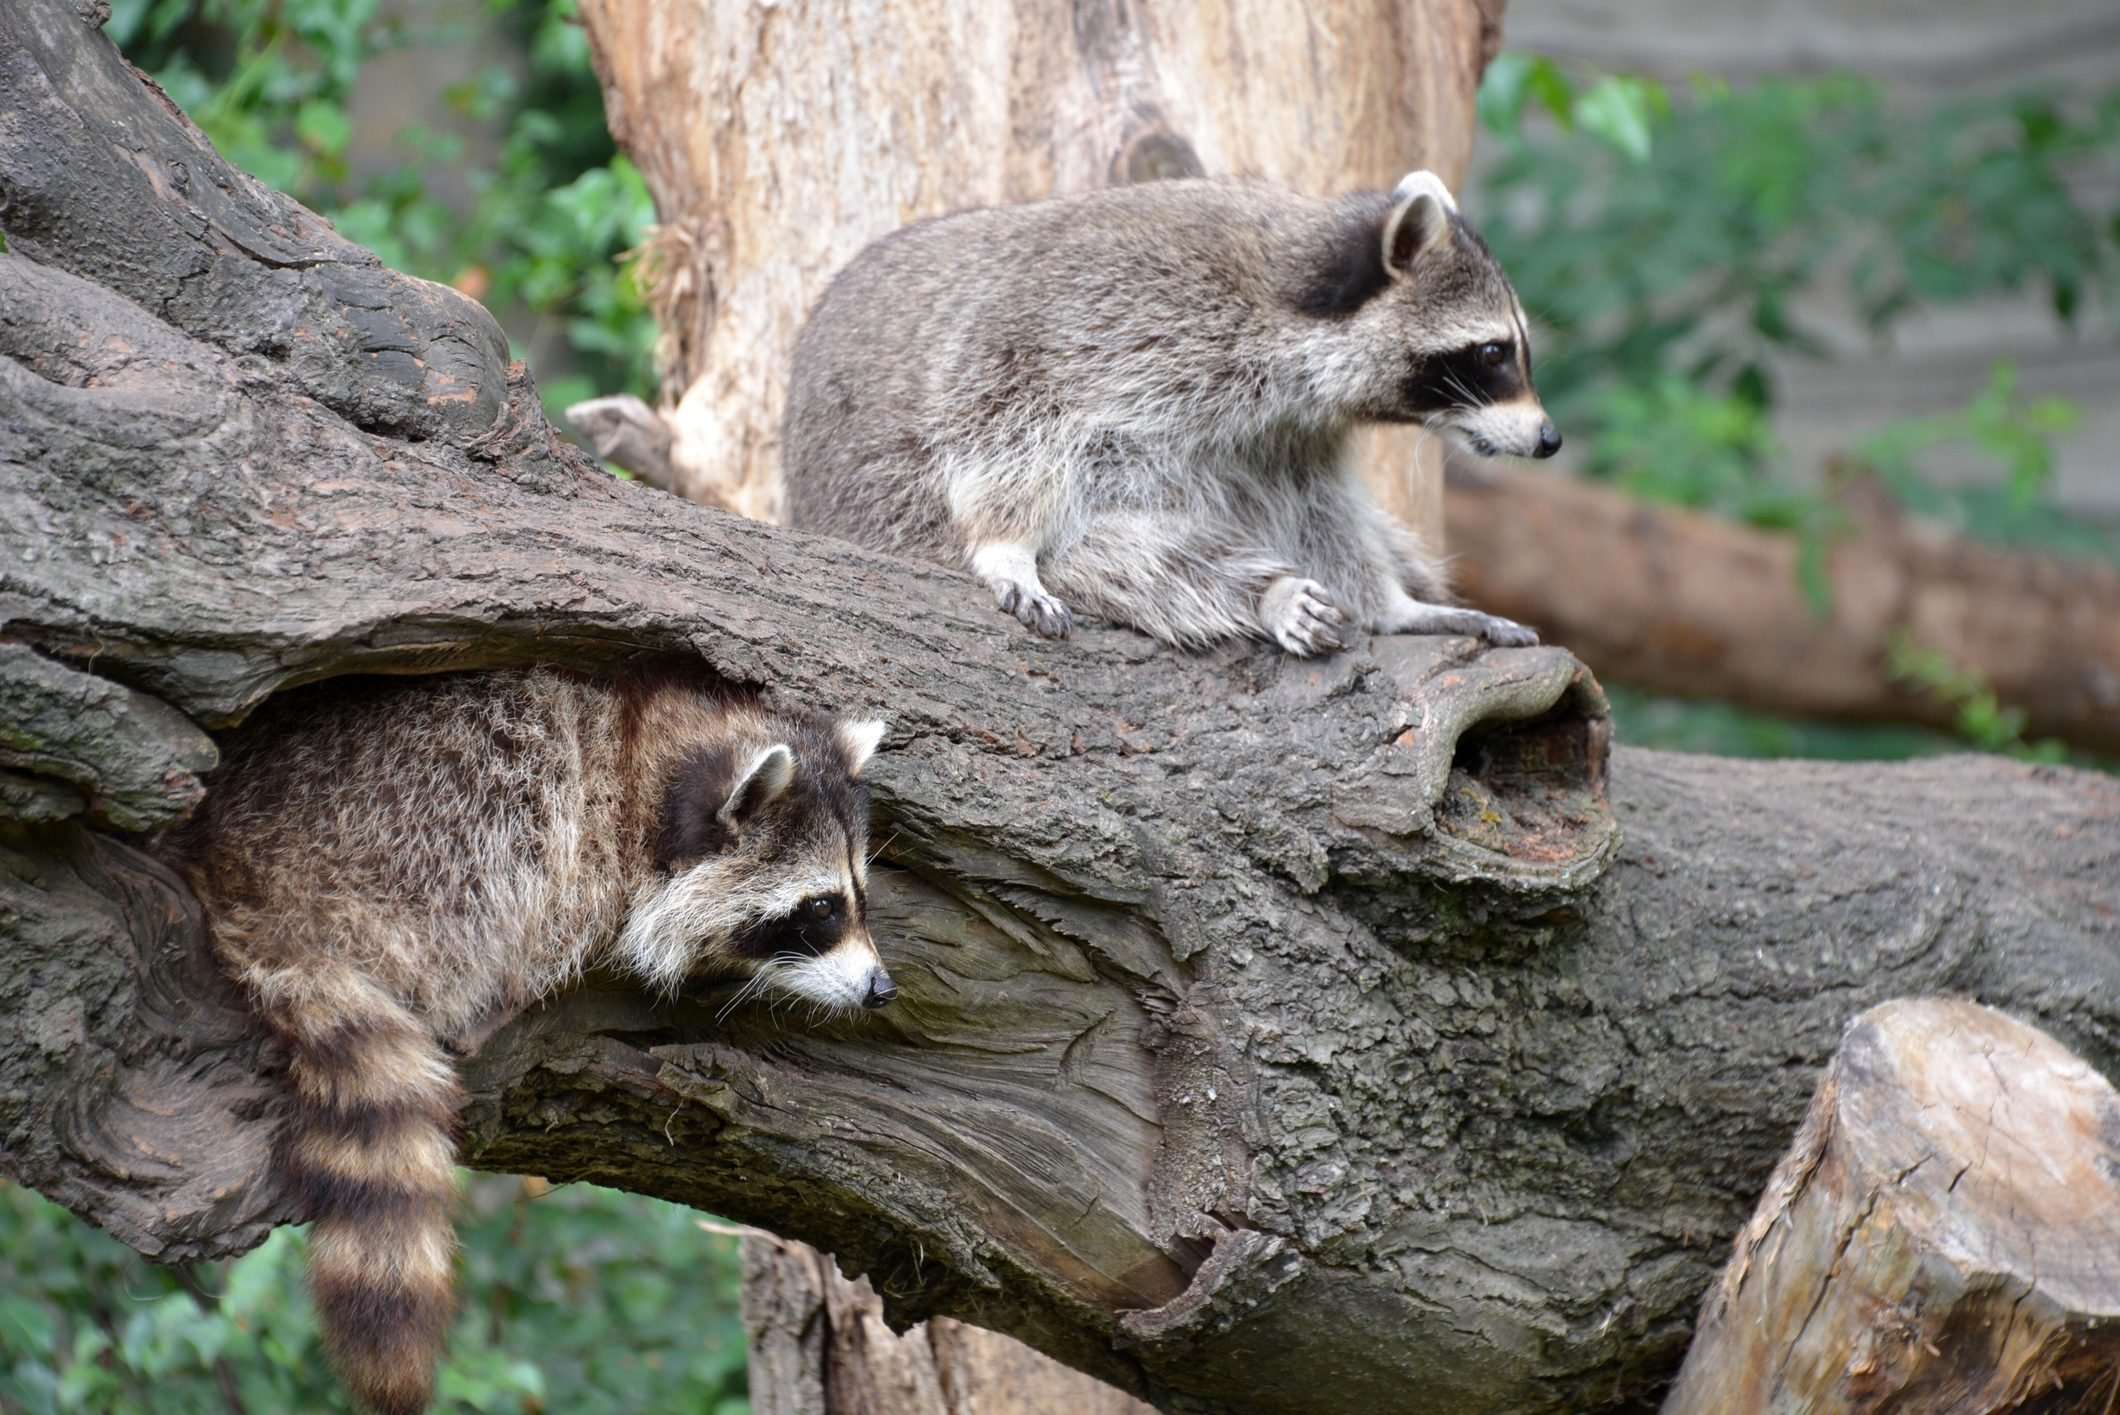 Low Angle View Of Two Raccoons On Branch